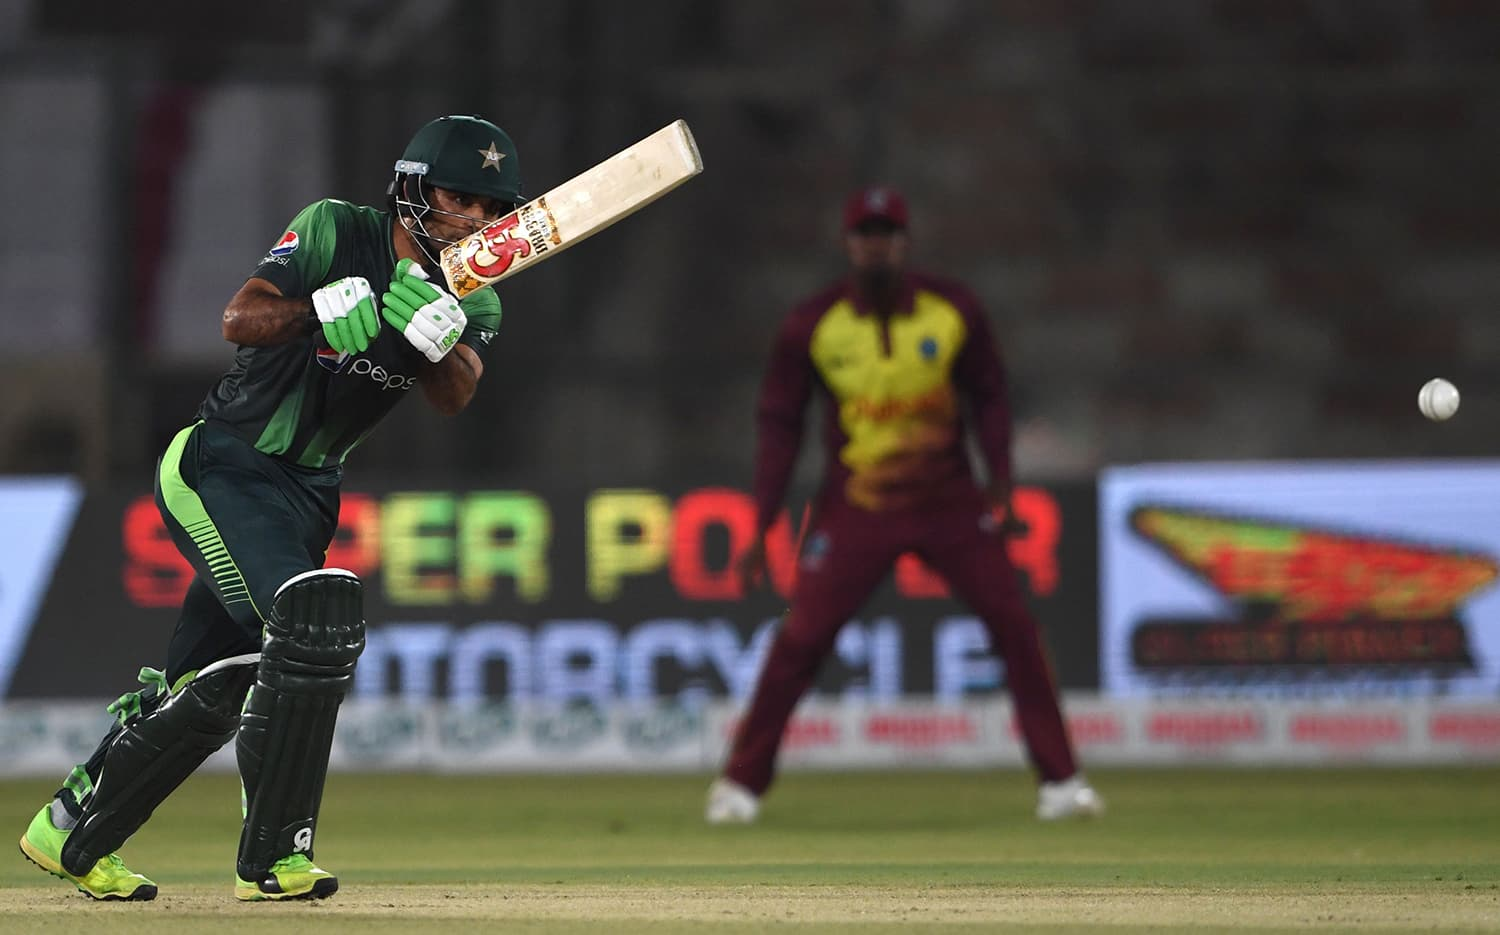 Fakhar Zaman watches the ball after playing a shot during the first T20 cricket match between Pakistan and West Indies. ─AFP